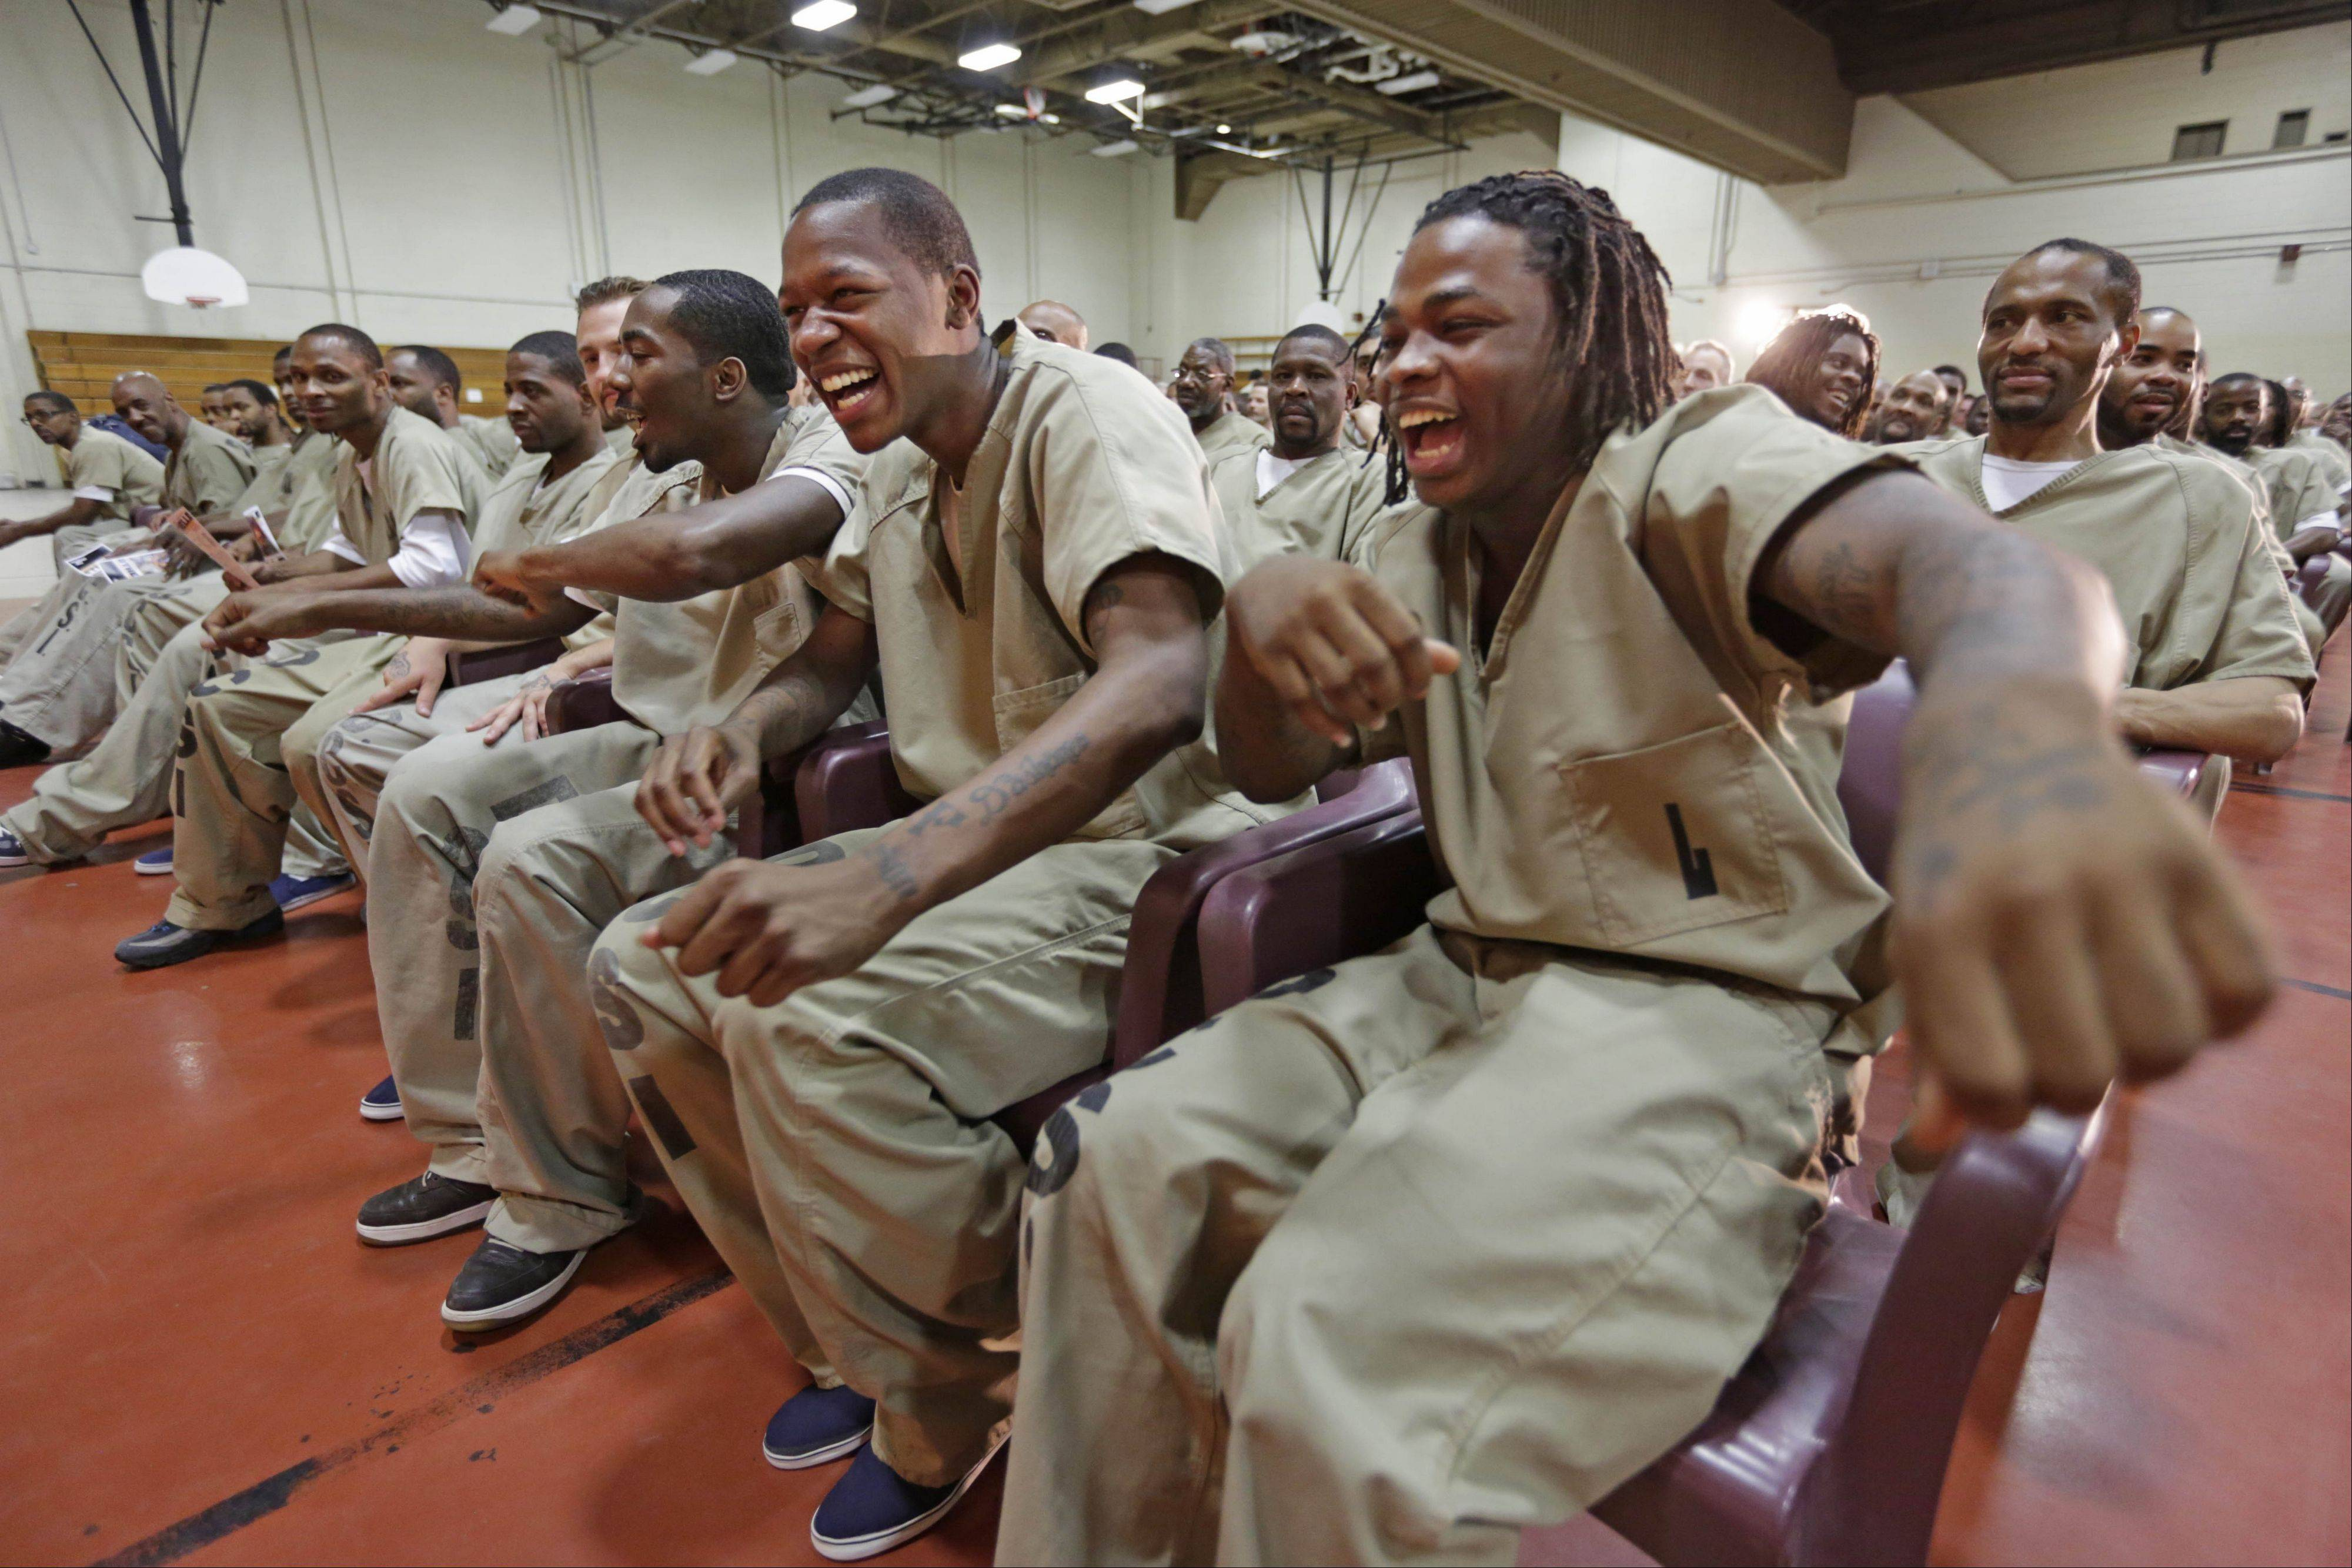 Inmates, from left, Eric McNeil, Kevin Fields and Julian Campbell, dance in their seats while watching rappers perform a hip hop adaptation of William Shakespeare�s Othello, titled �Othello: The Remix� at the Cook County Jail in Chicago.